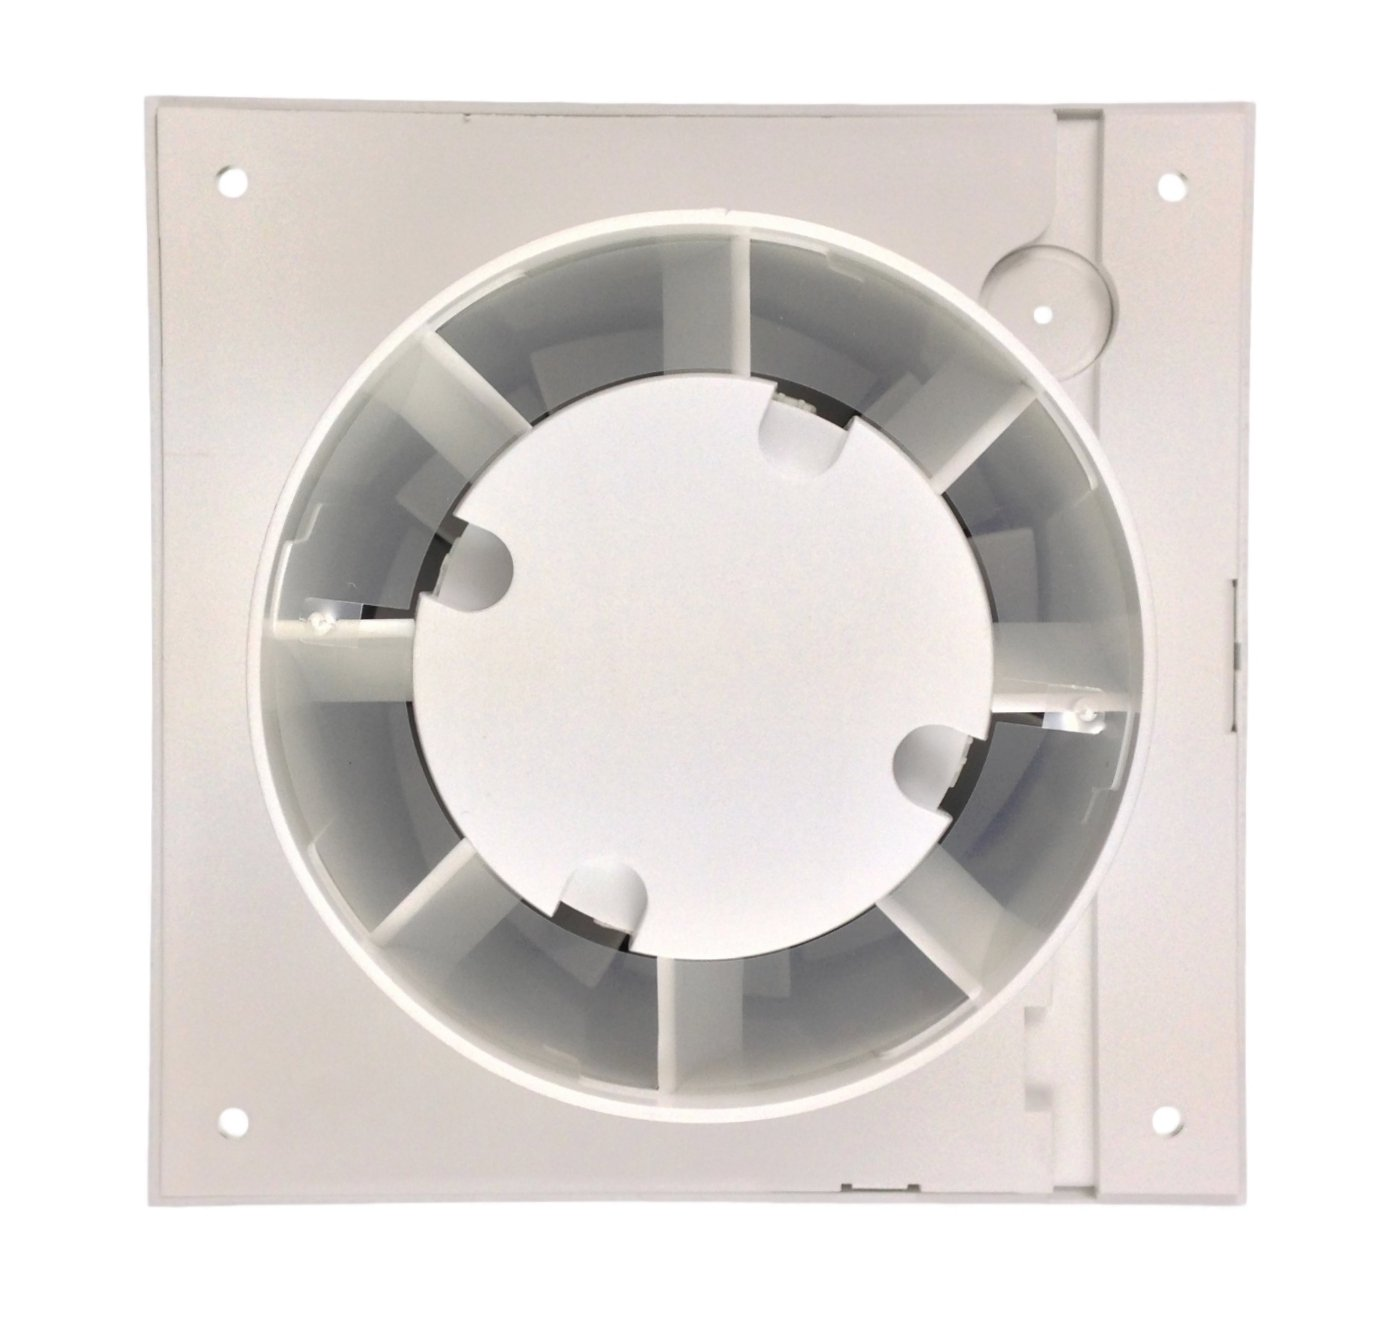 Bathroom extractor fan prices - Envirovent Sil100t Silent Bathroom Extractor Fan For 4 100mm Ducting Amazon Co Uk Diy Tools